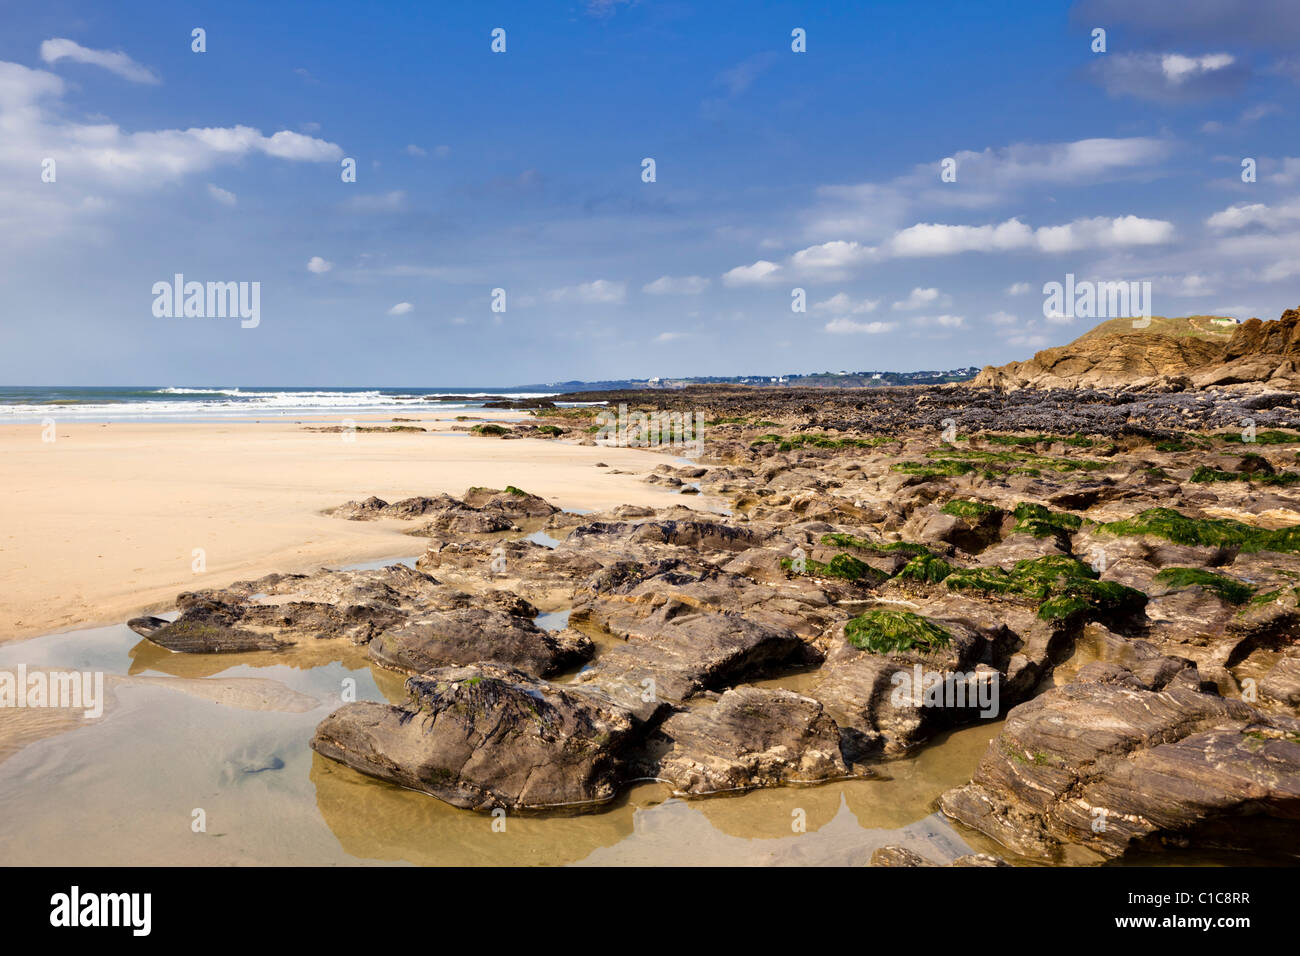 Brittany beaches, France - Beach and rocks at Guidel Plages, near Lorient, Morbihan, Brittany, France. - Stock Image